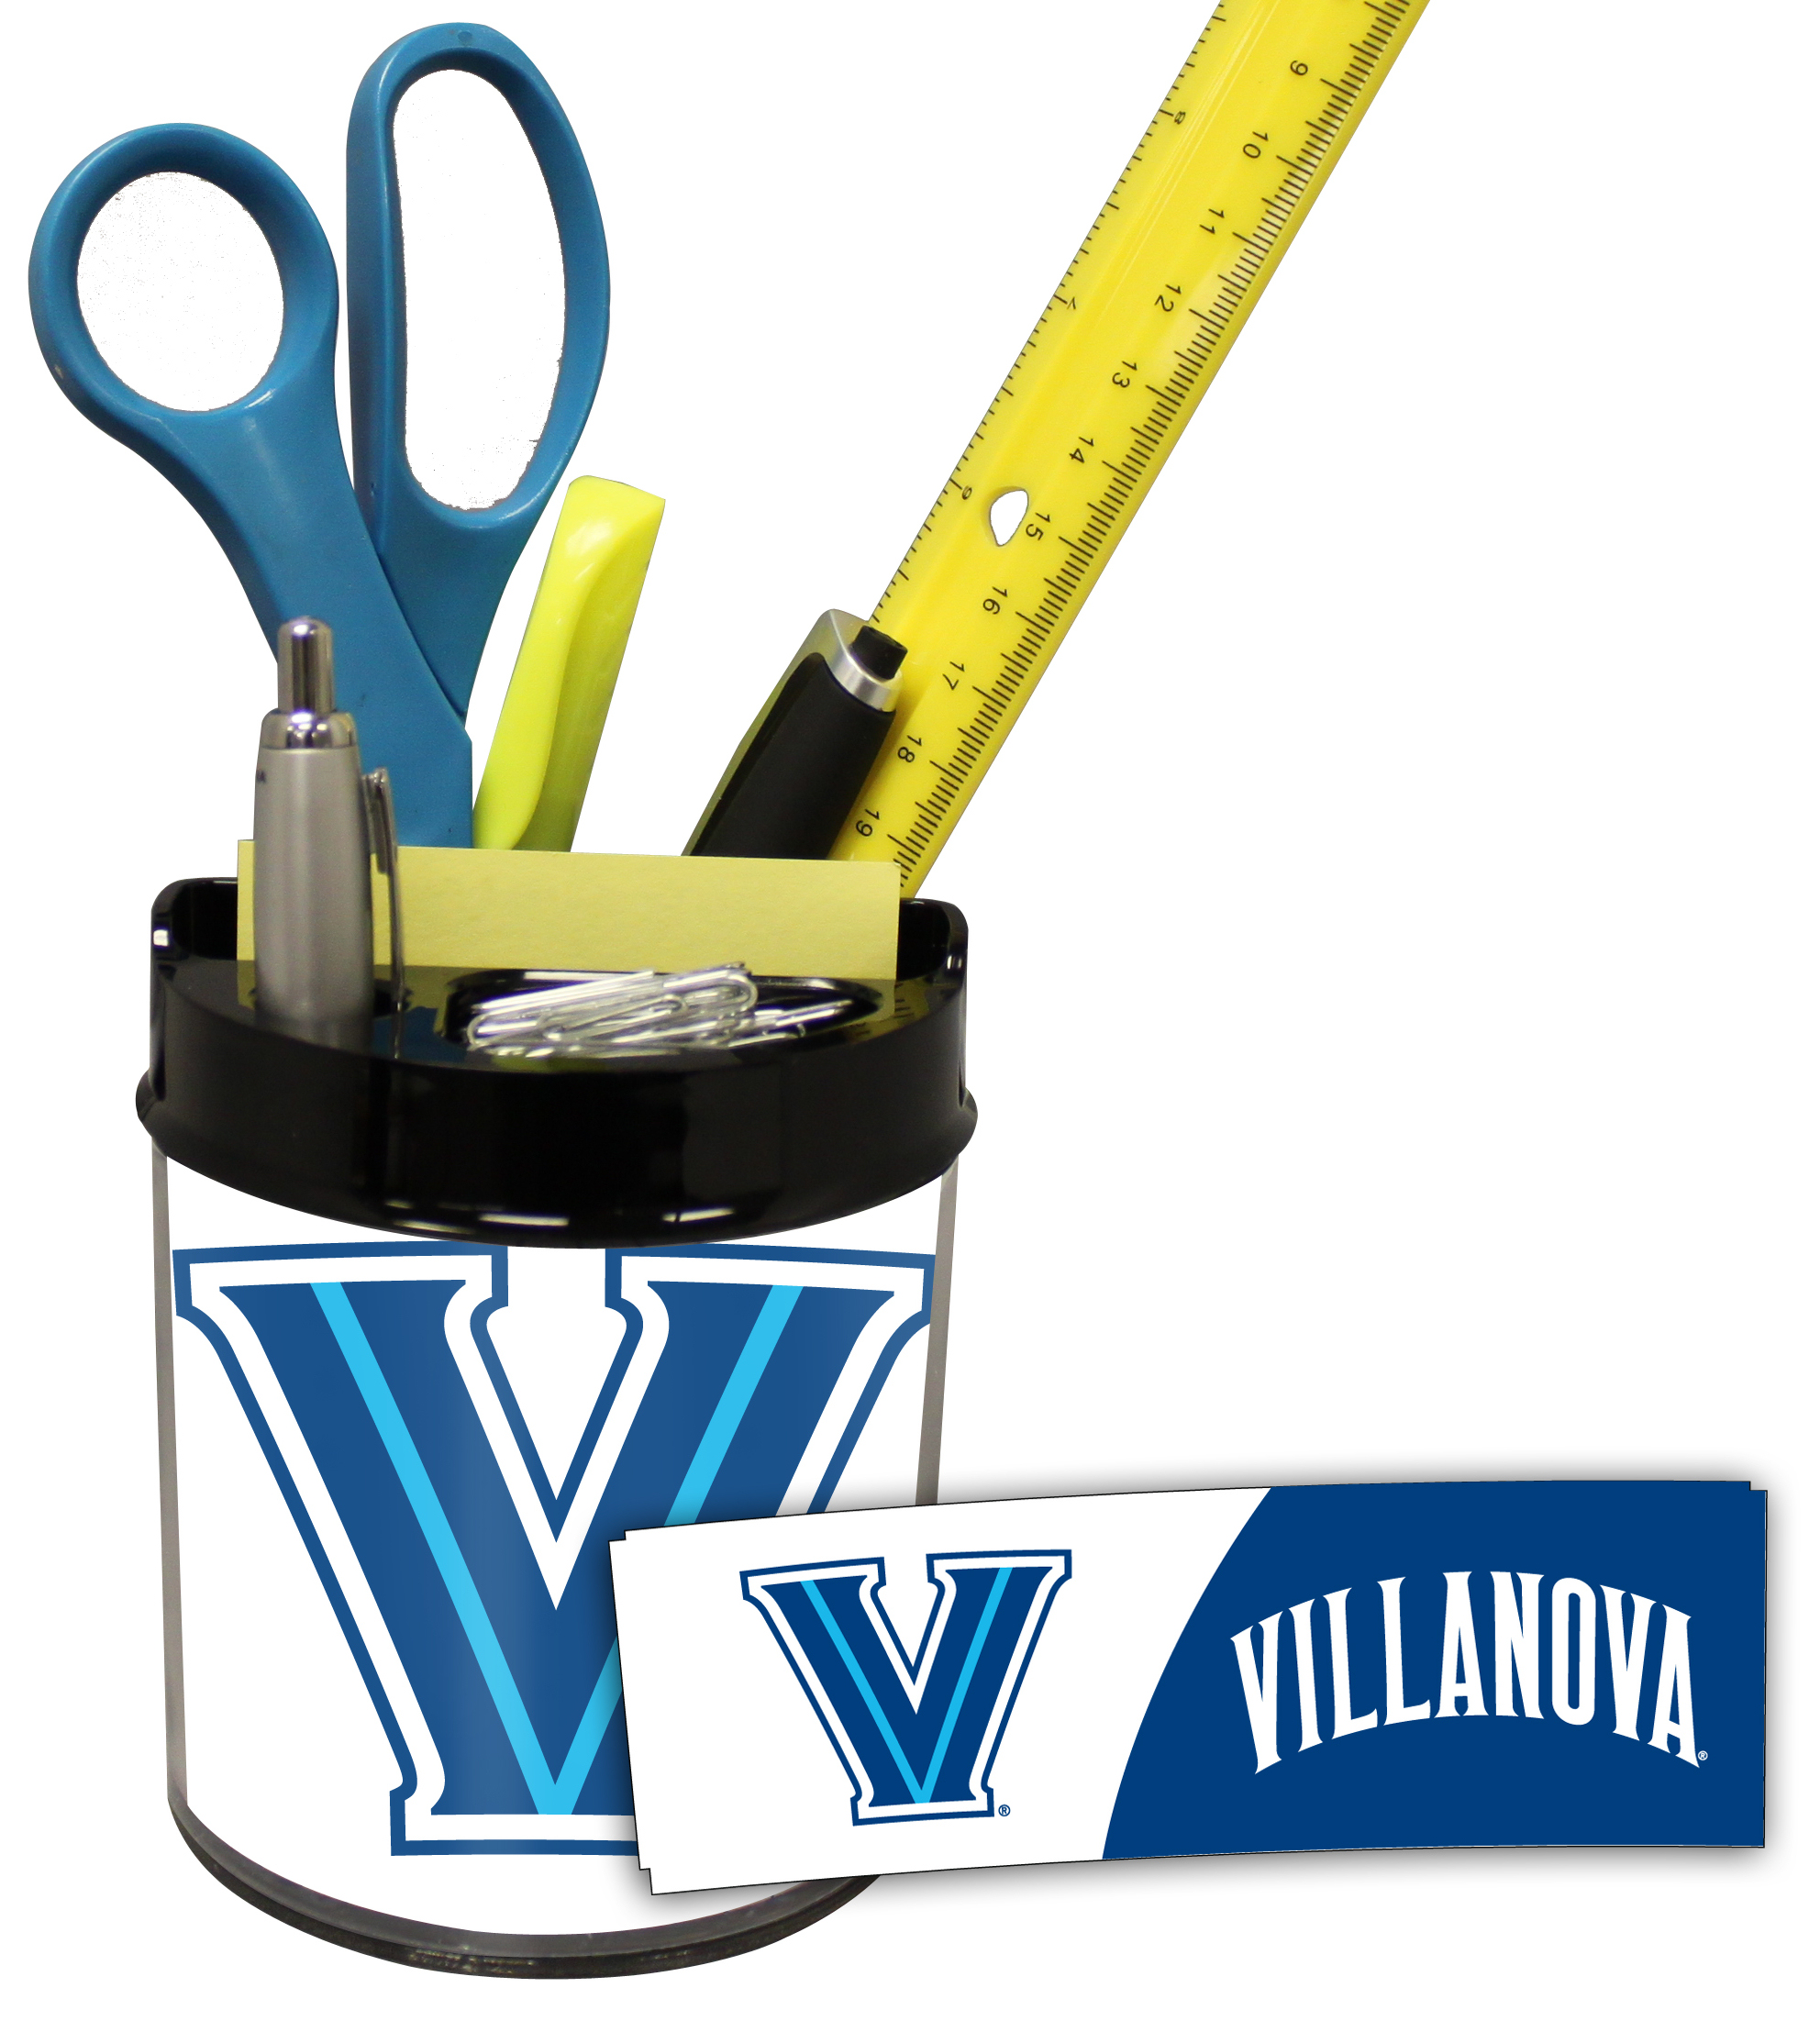 Villanova Wildcats Small Desk Caddy